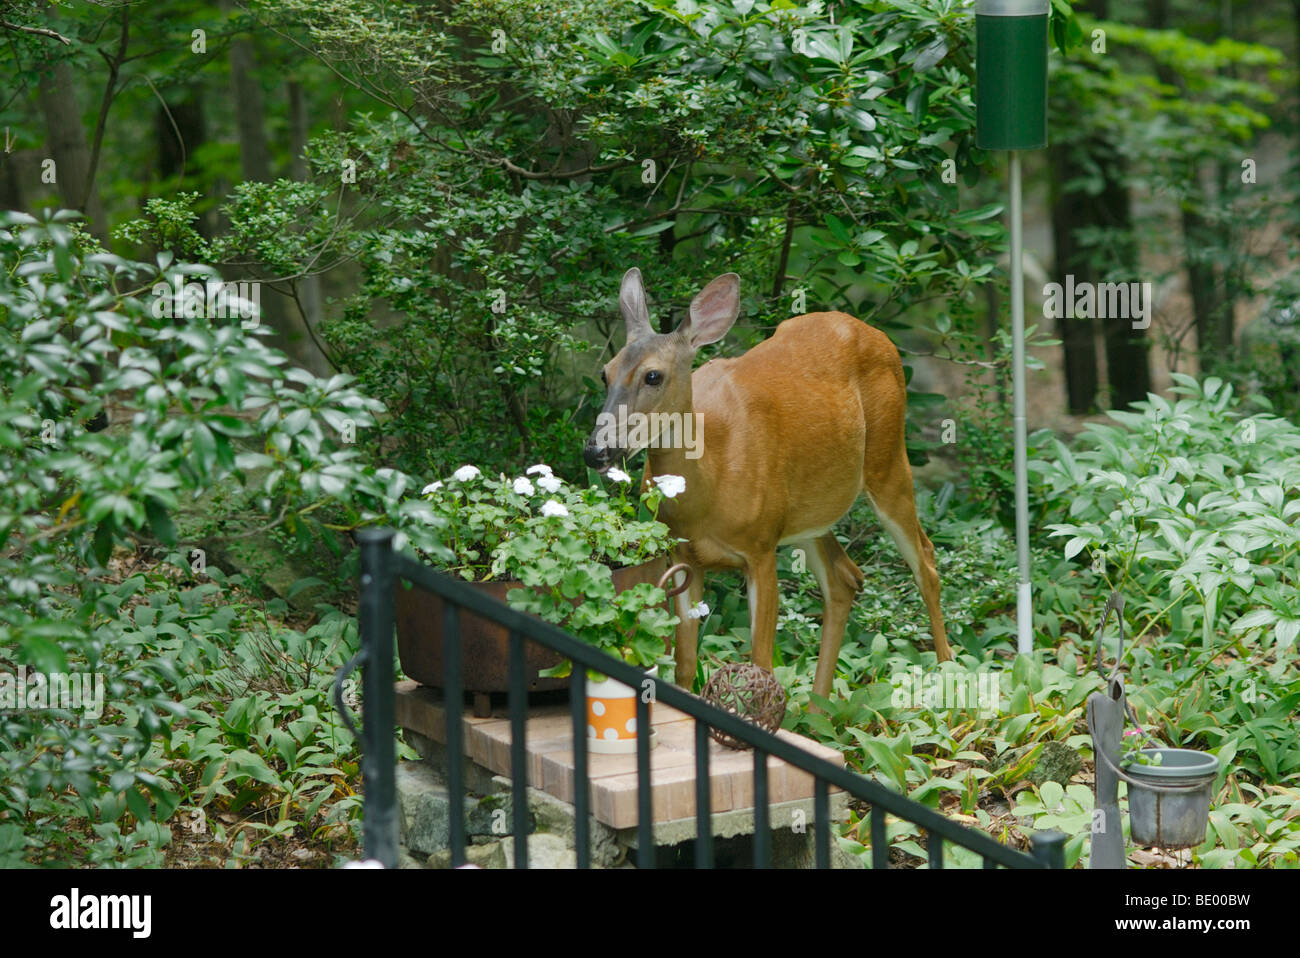 Whitetail deer, Odocoileus virginianus,  in garden eating flowers. - Stock Image